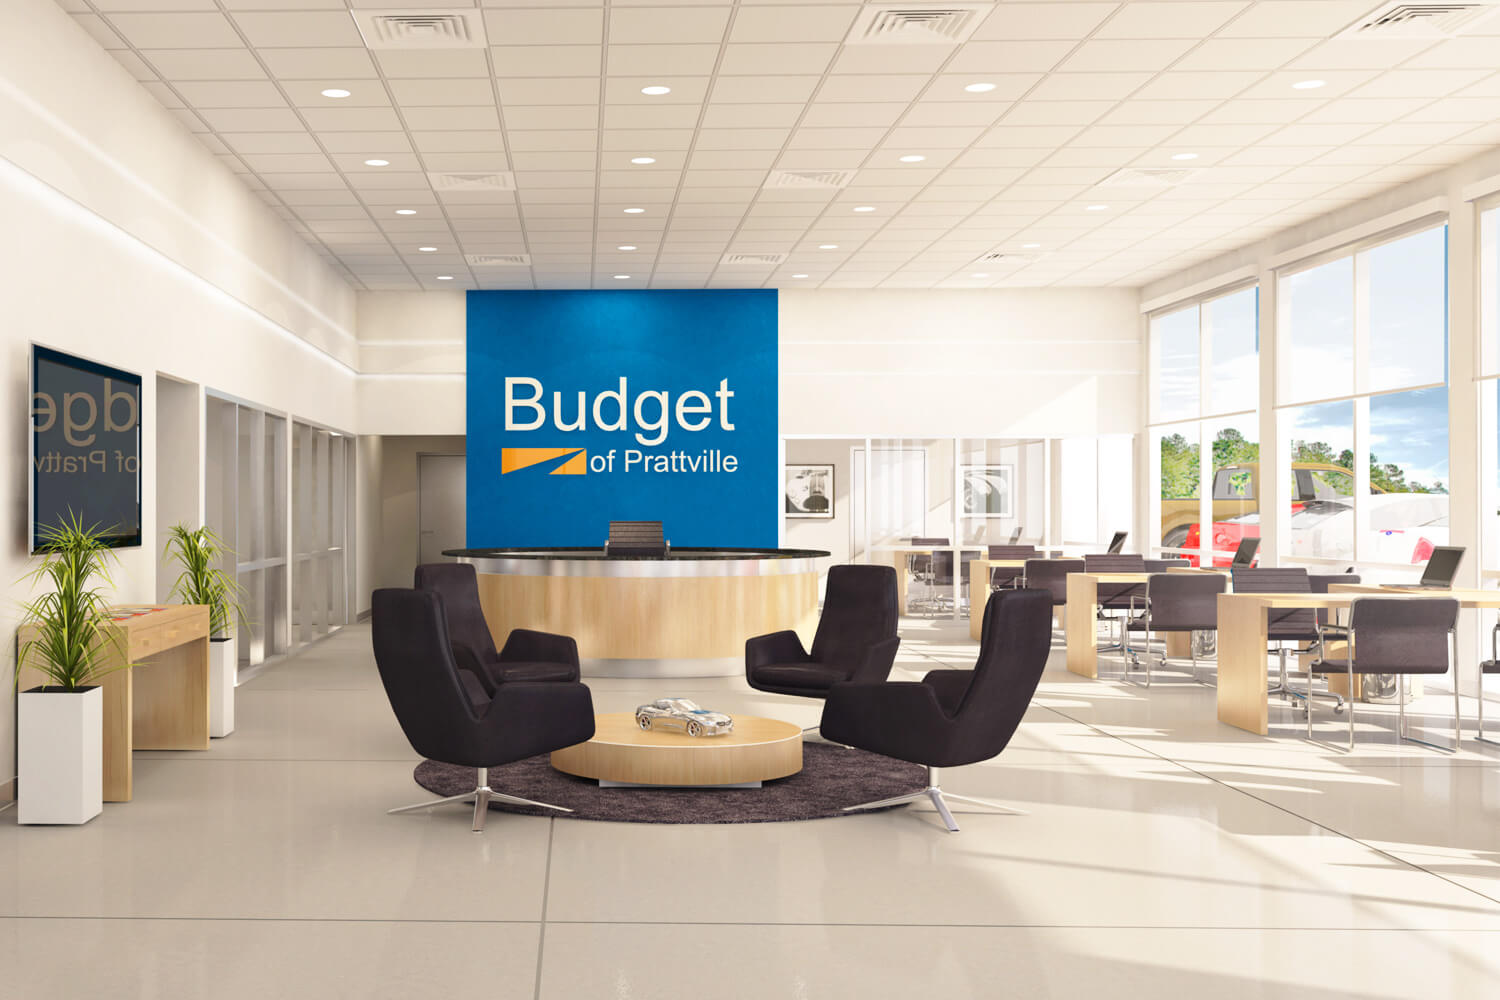 Budget Car Sales of Prattville Designed by Foshee Architecture - Artist Depiction and Rendering of the Interior of the Dealership